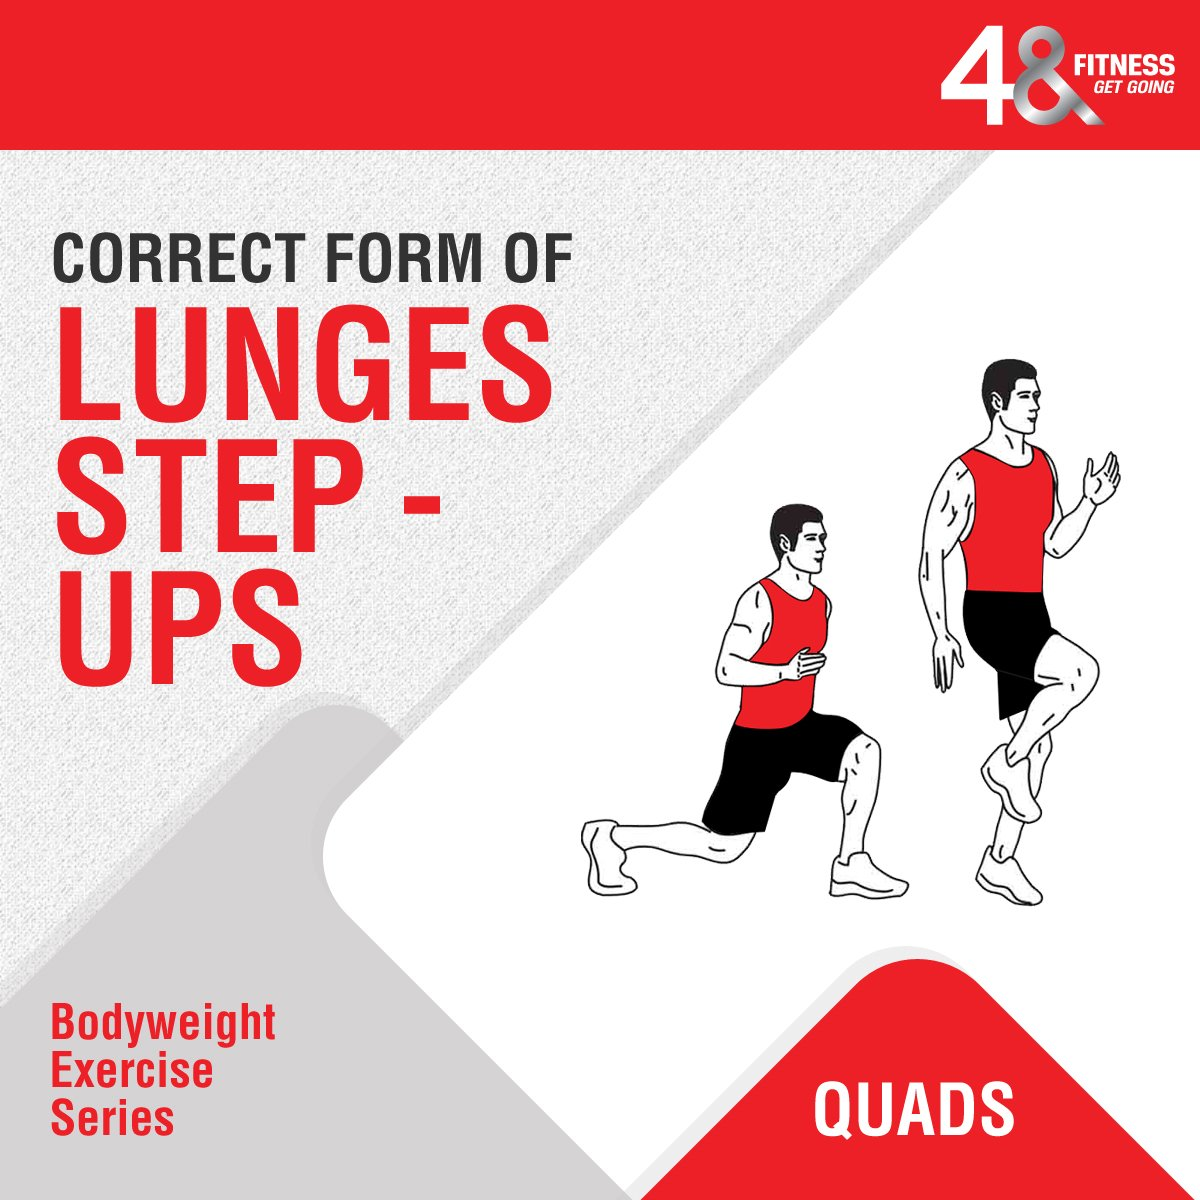 Give yourself a boost with an overall fitness regime and improve your strength too. Learn it from the experts available only at #48Fitness. . . . #fitIndia #lungesandsquats #lungesworkout #fitnessfam #fitnessjunkie #exercisemadeeasy #healthymindhealthybody<br>http://pic.twitter.com/JNPd0Bv2MD